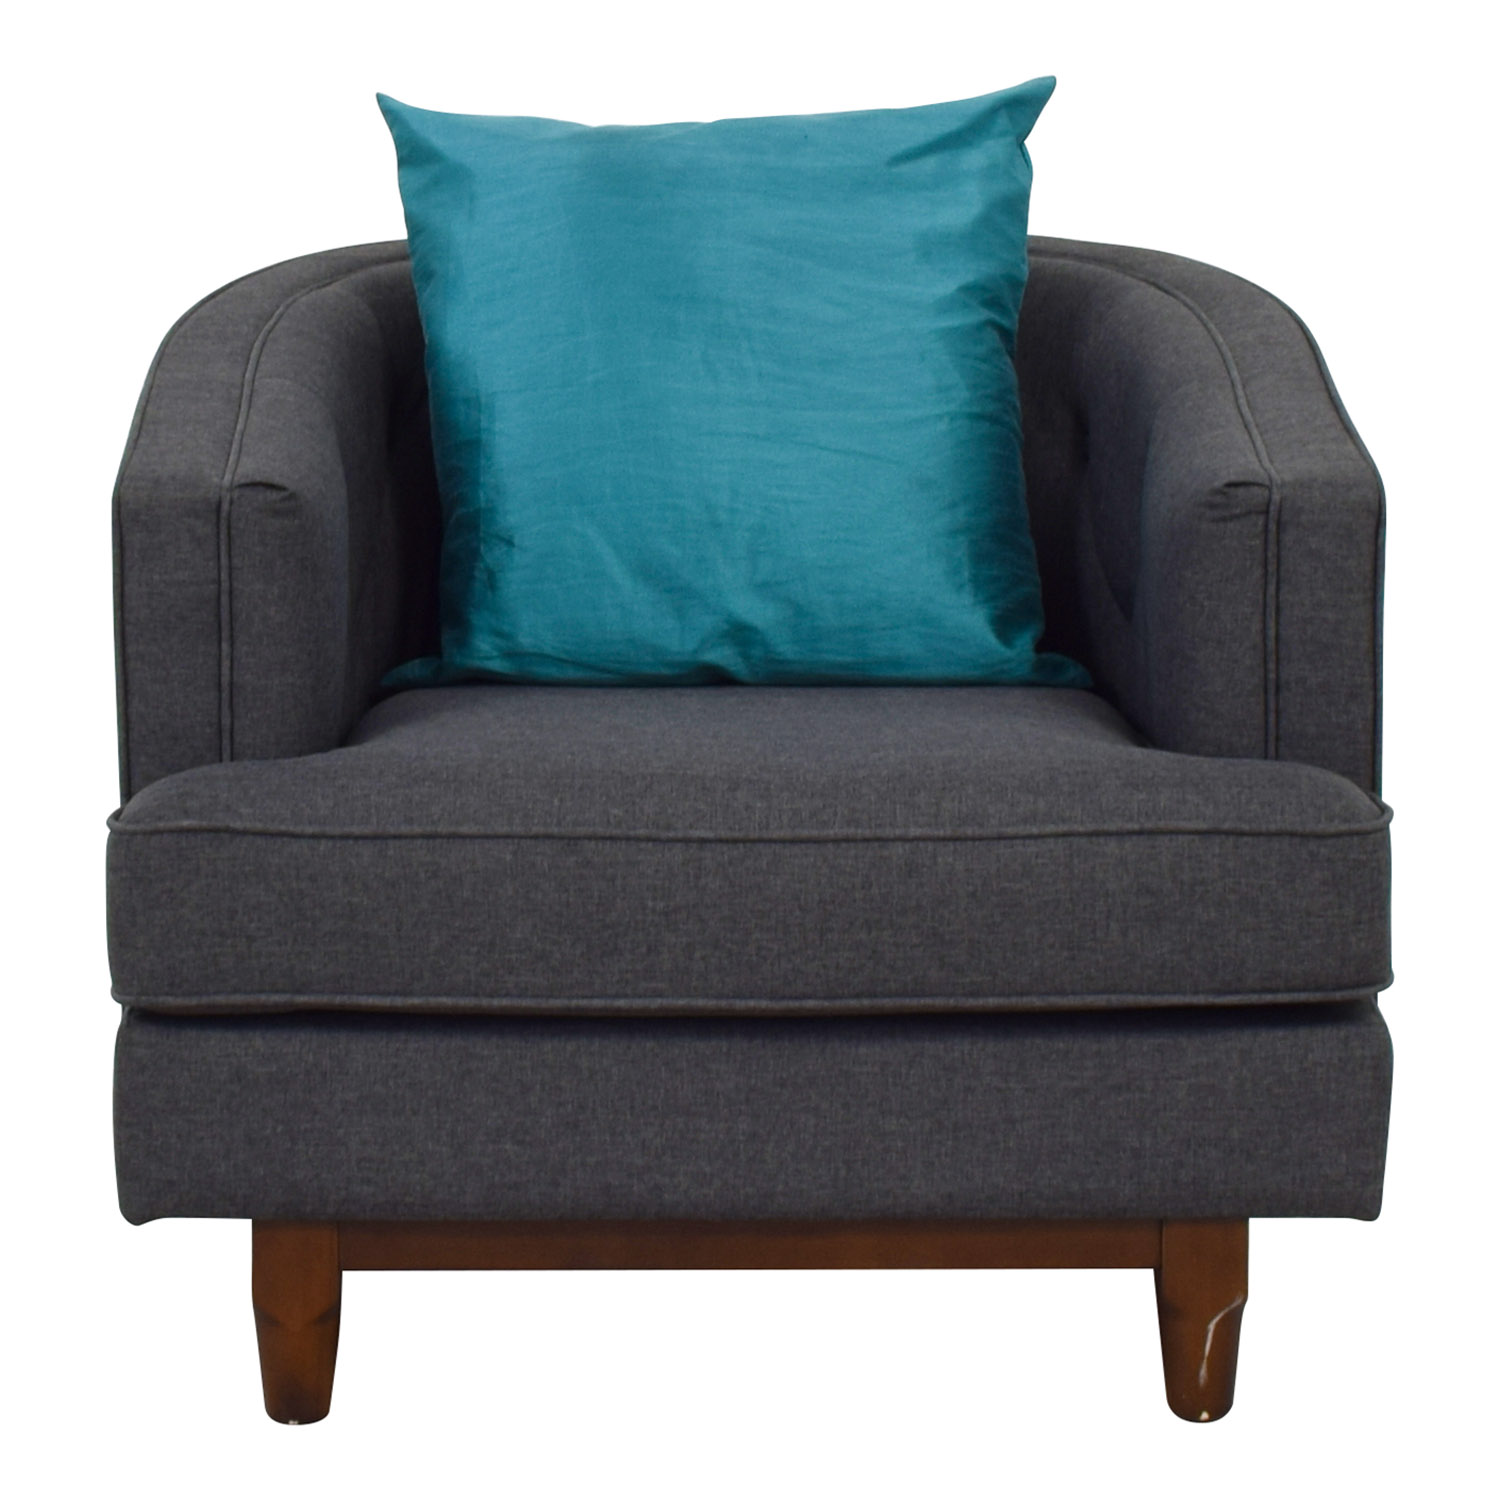 Modway Grey Upholstered Club Chair sale